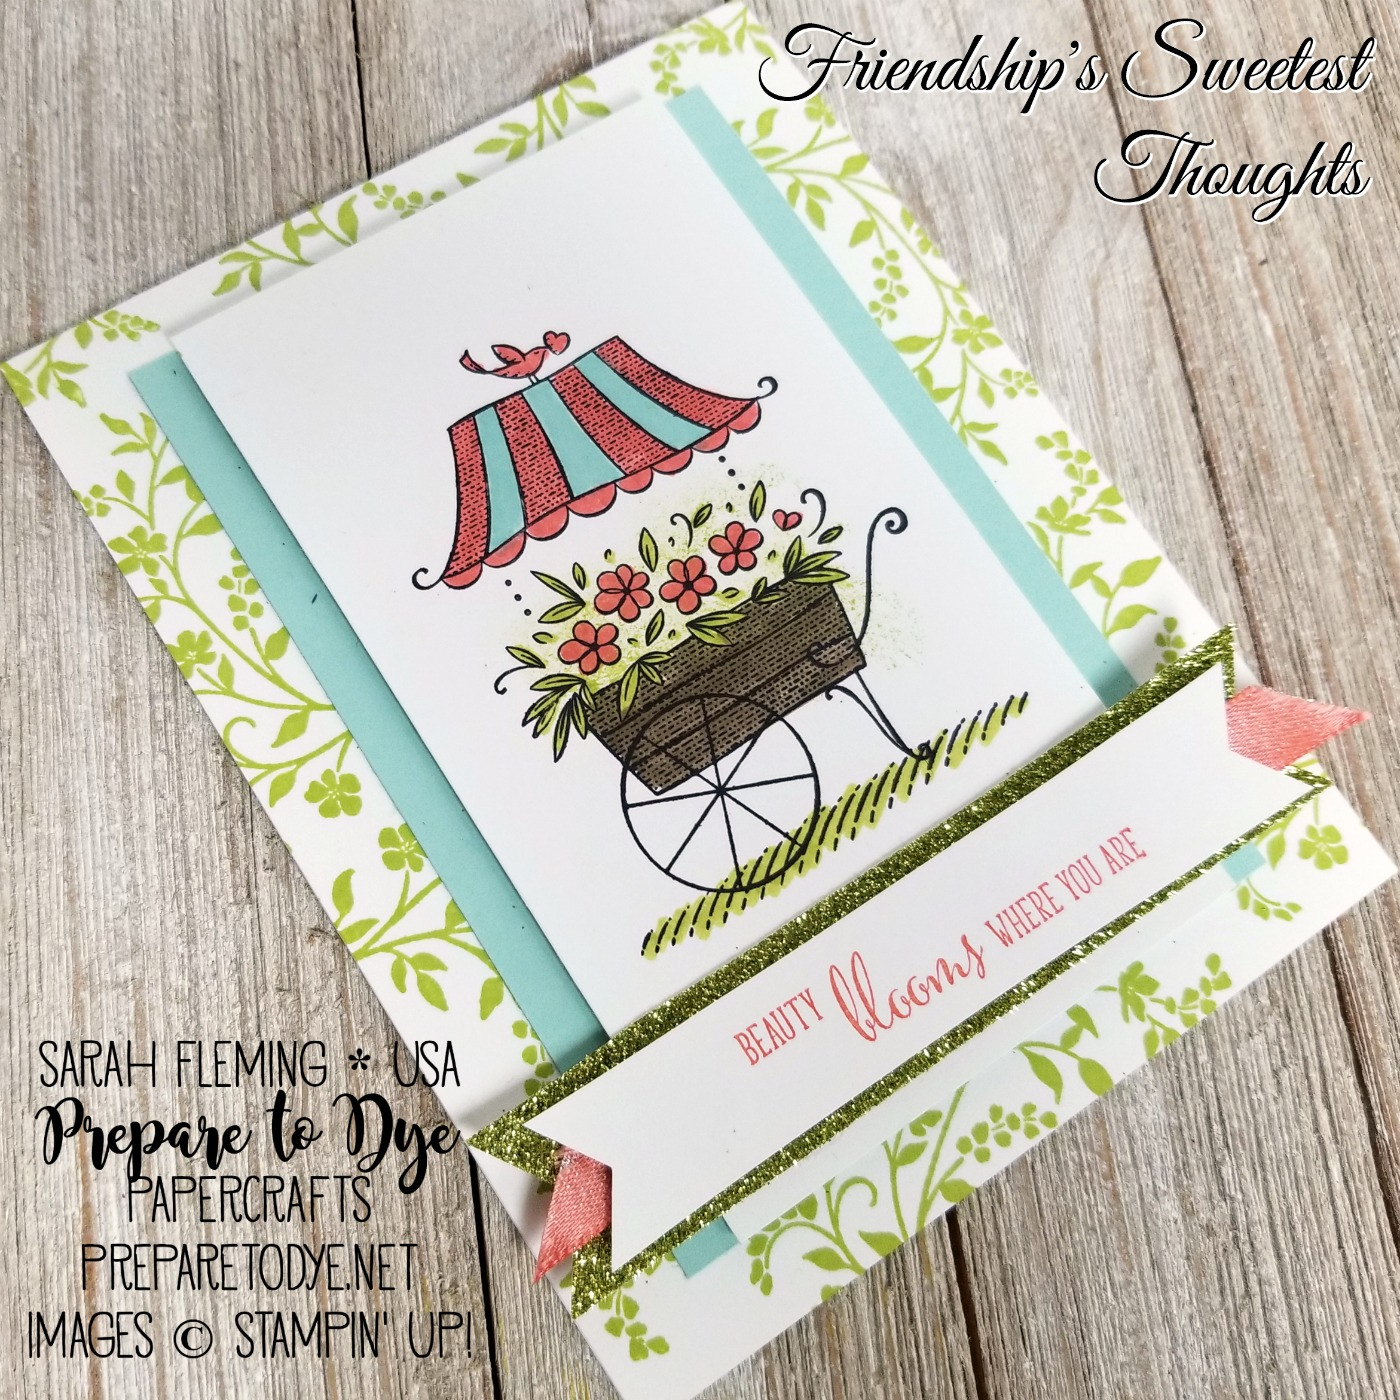 Stampin' Up! Friendship's Sweetest Thoughts with Hold On to Hope, Myths & Magic Glimmer Paper, Sale-A-Bration Shimmer Ribbon Pack (free with $50 purchase), Stampin' Write Markers - Sarah Fleming - Prepare to Dye Papercrafts